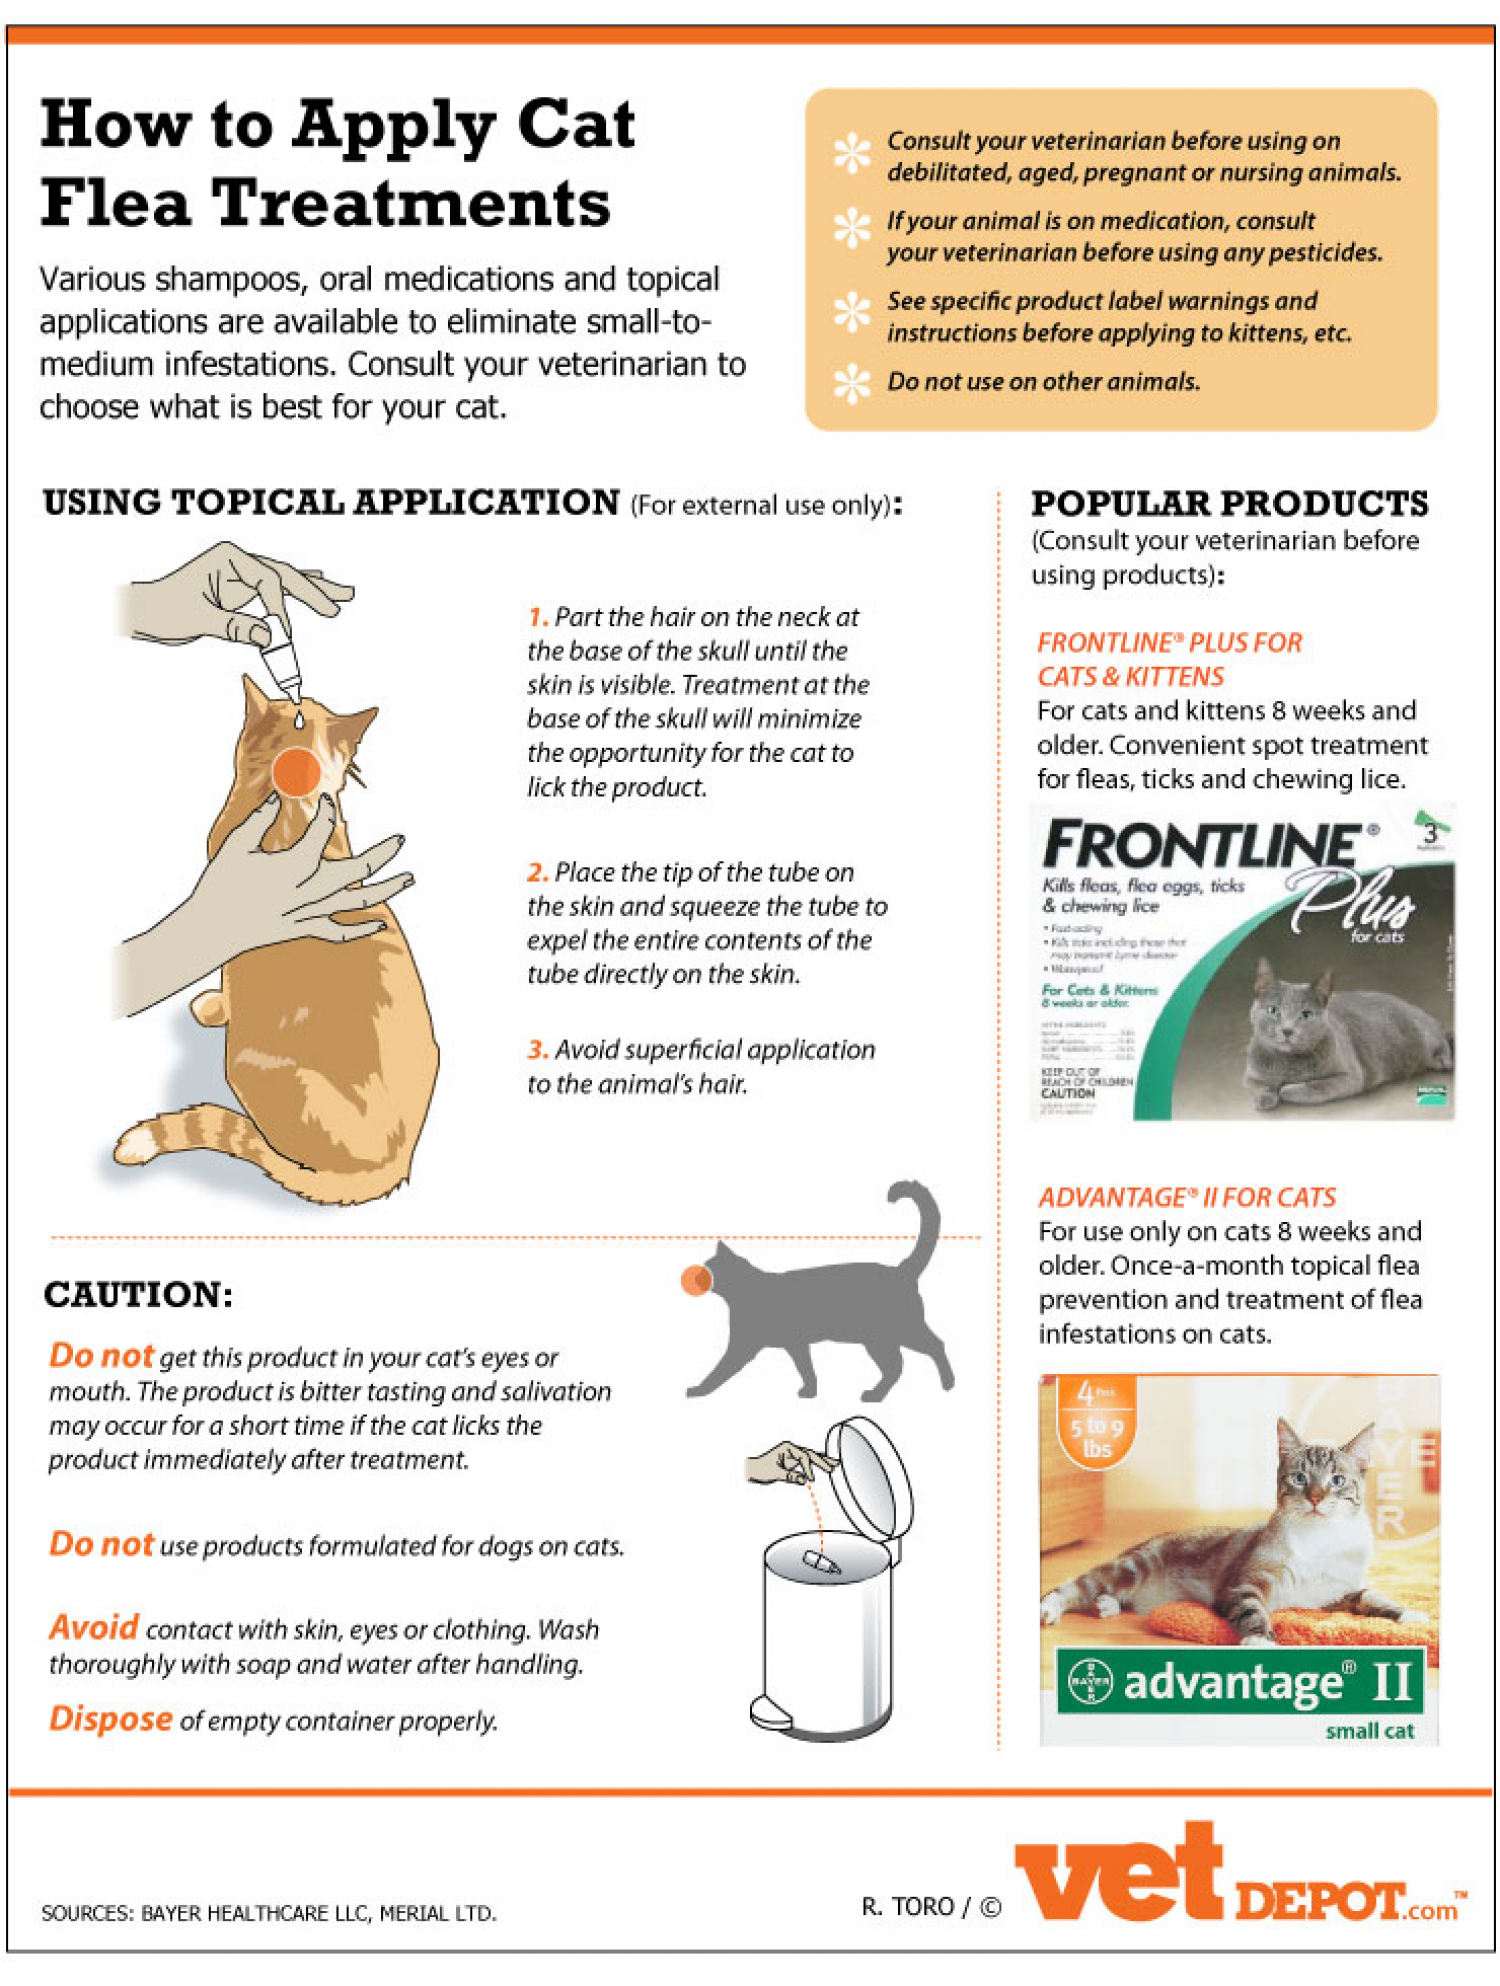 At What Age Can Cats Get Flea Treatment